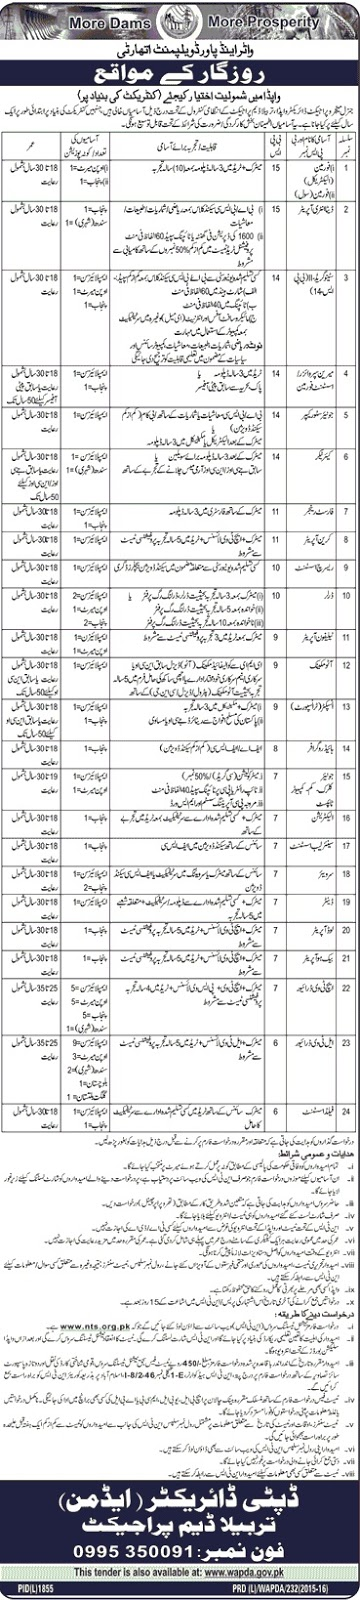 Jobs in Wapda Pakistan